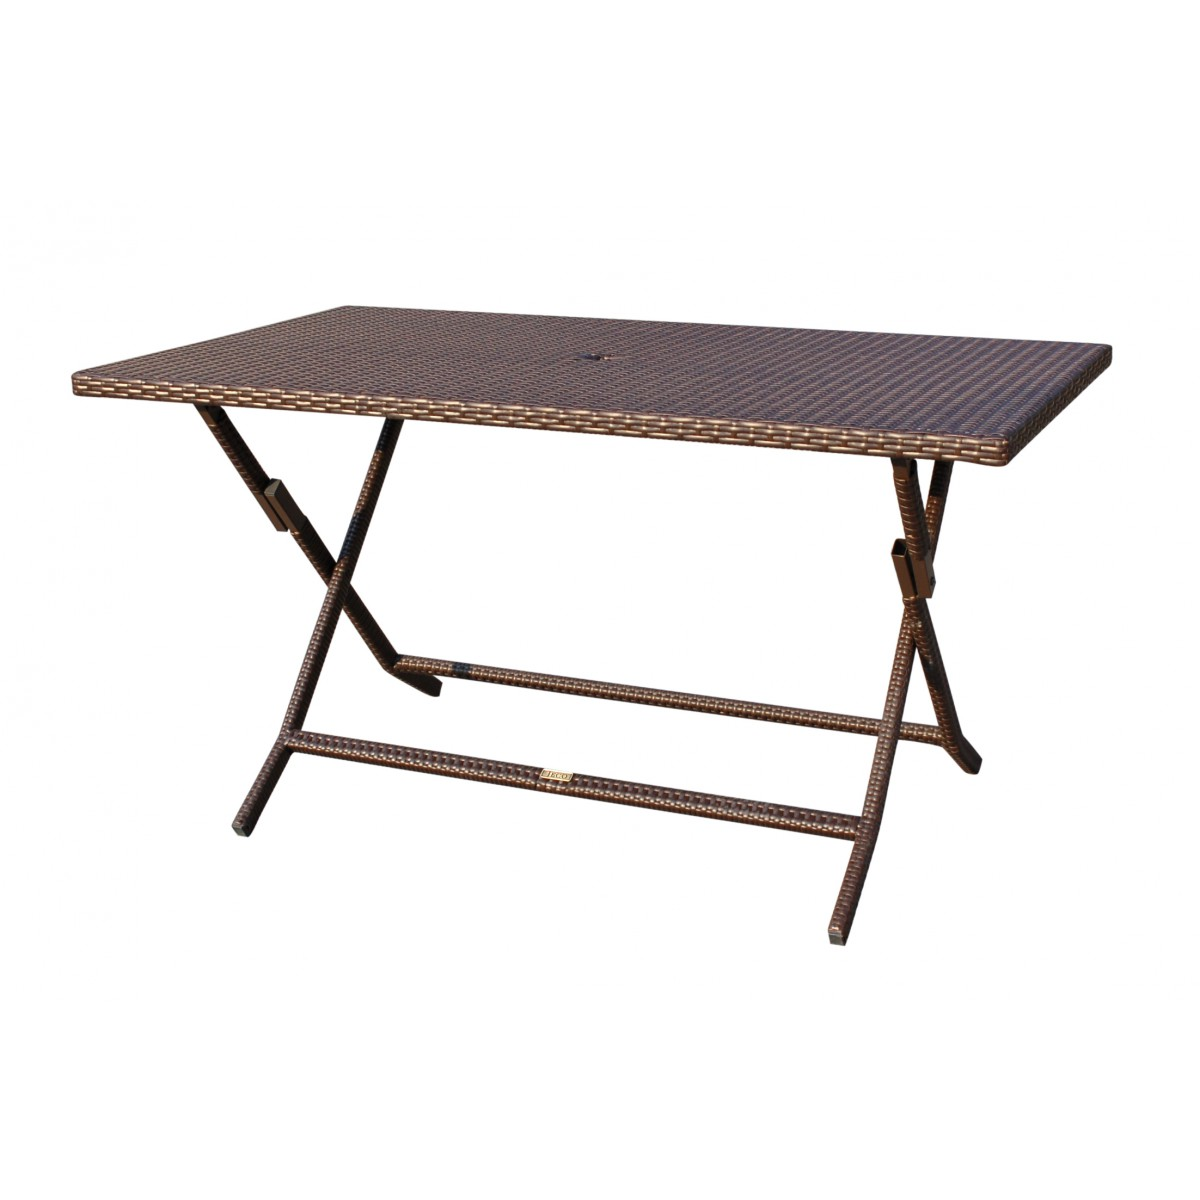 Cafe Square Folding Table with wicker on leg